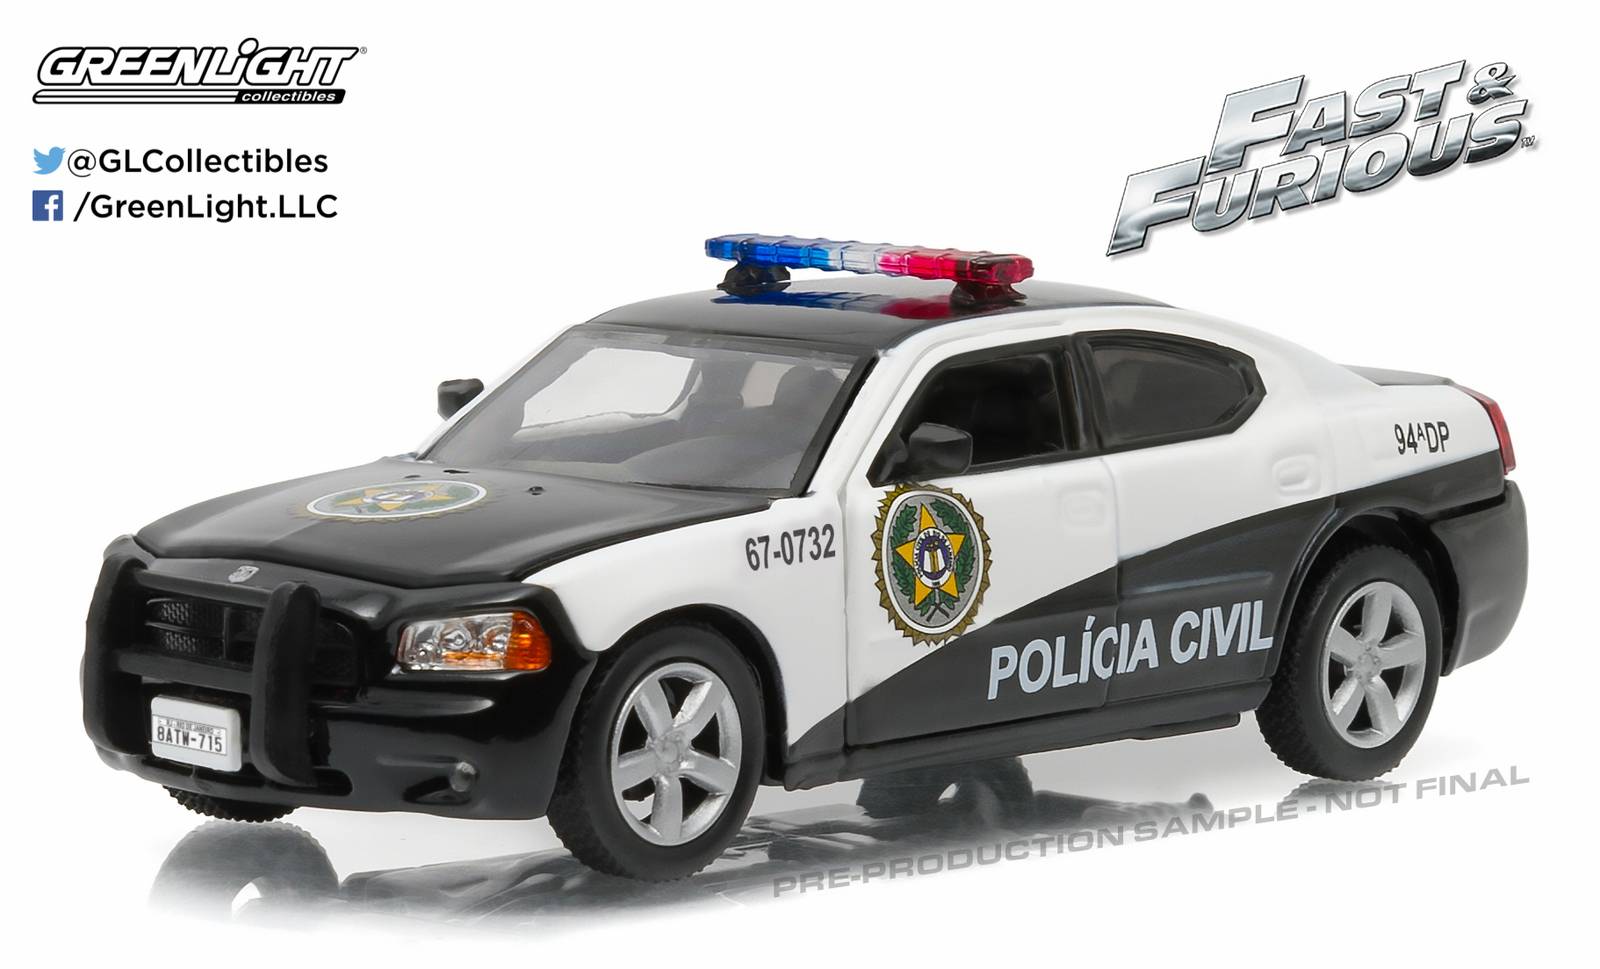 1/43: Dodge Charger - Rio Police - Diecast Model image